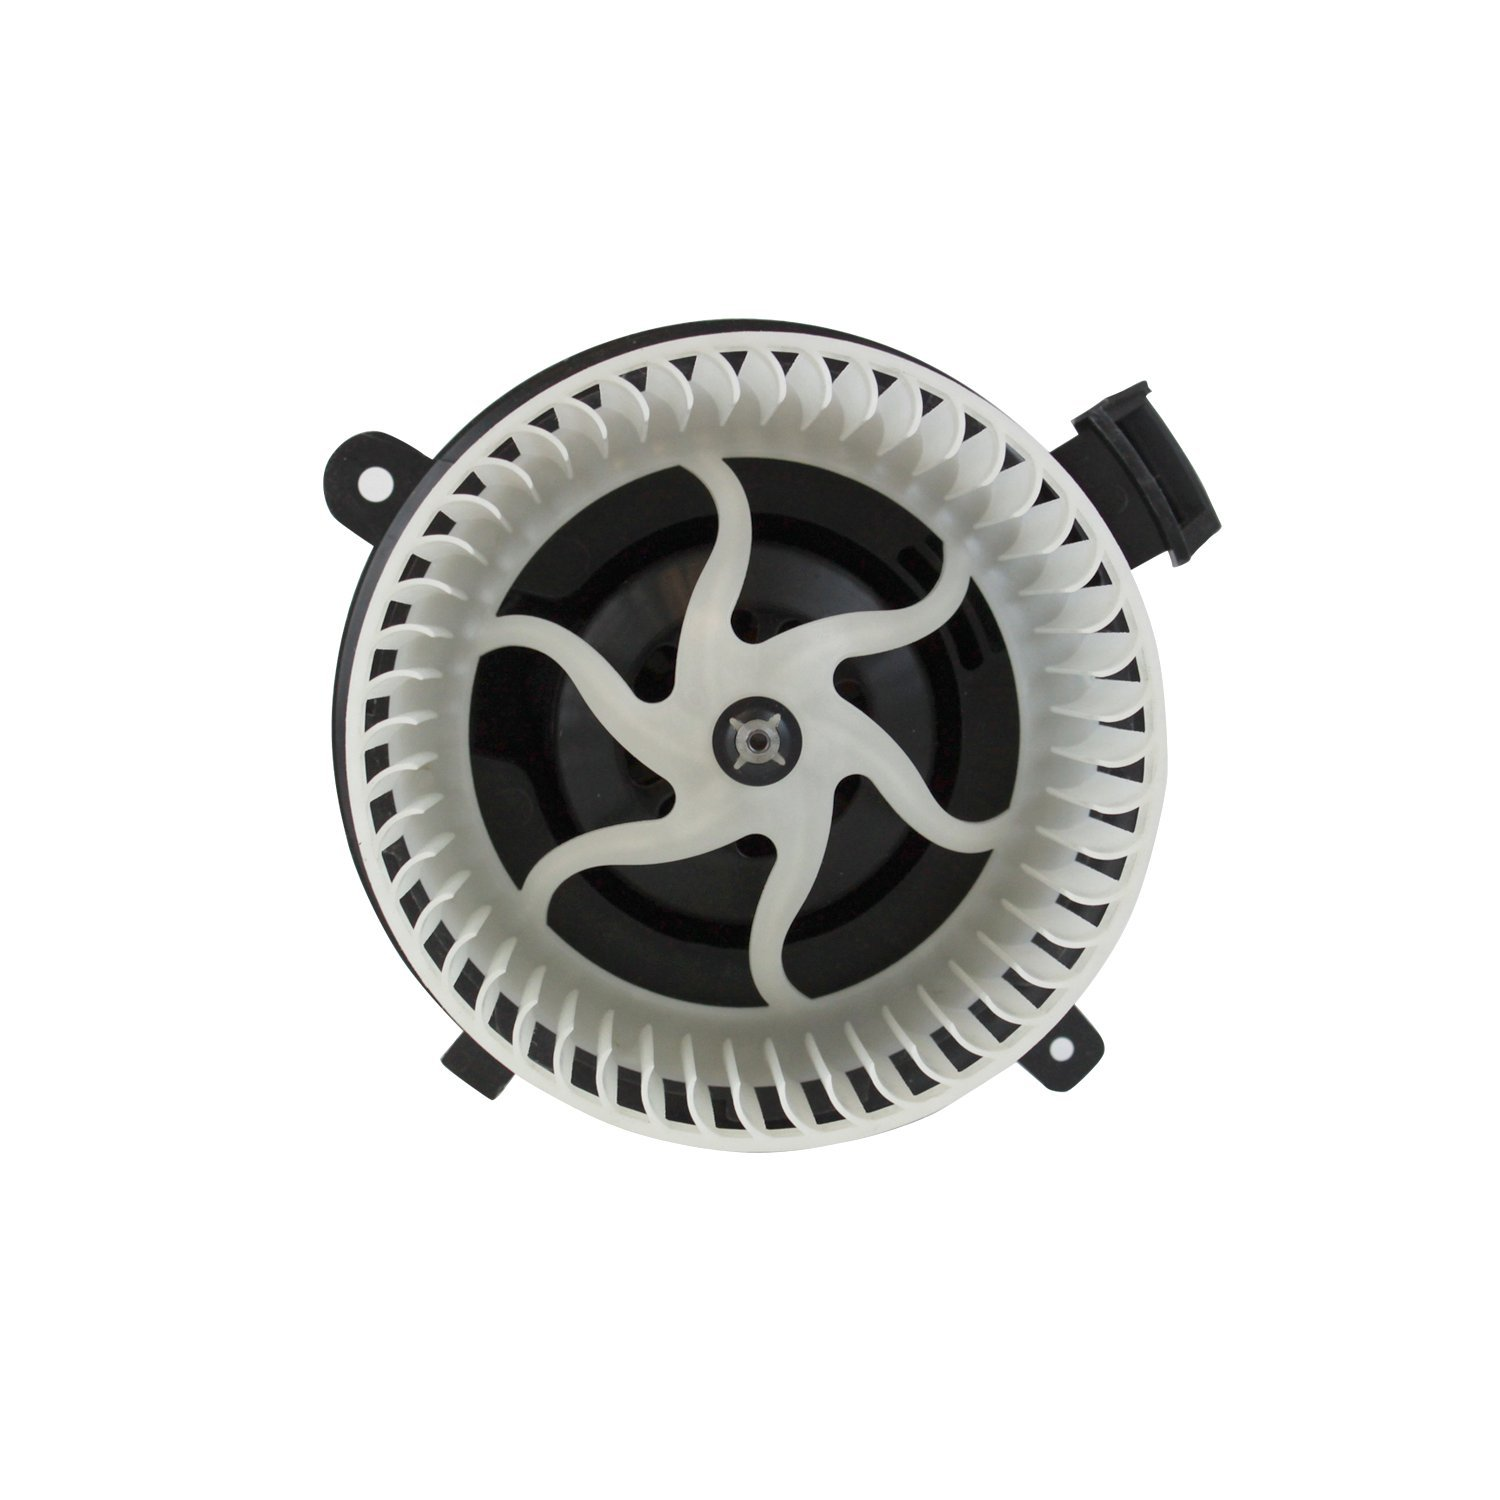 61S9YJsGqfL._SL1500_ tyc 700236 replacement blower assembly, blower motors amazon canada  at alyssarenee.co